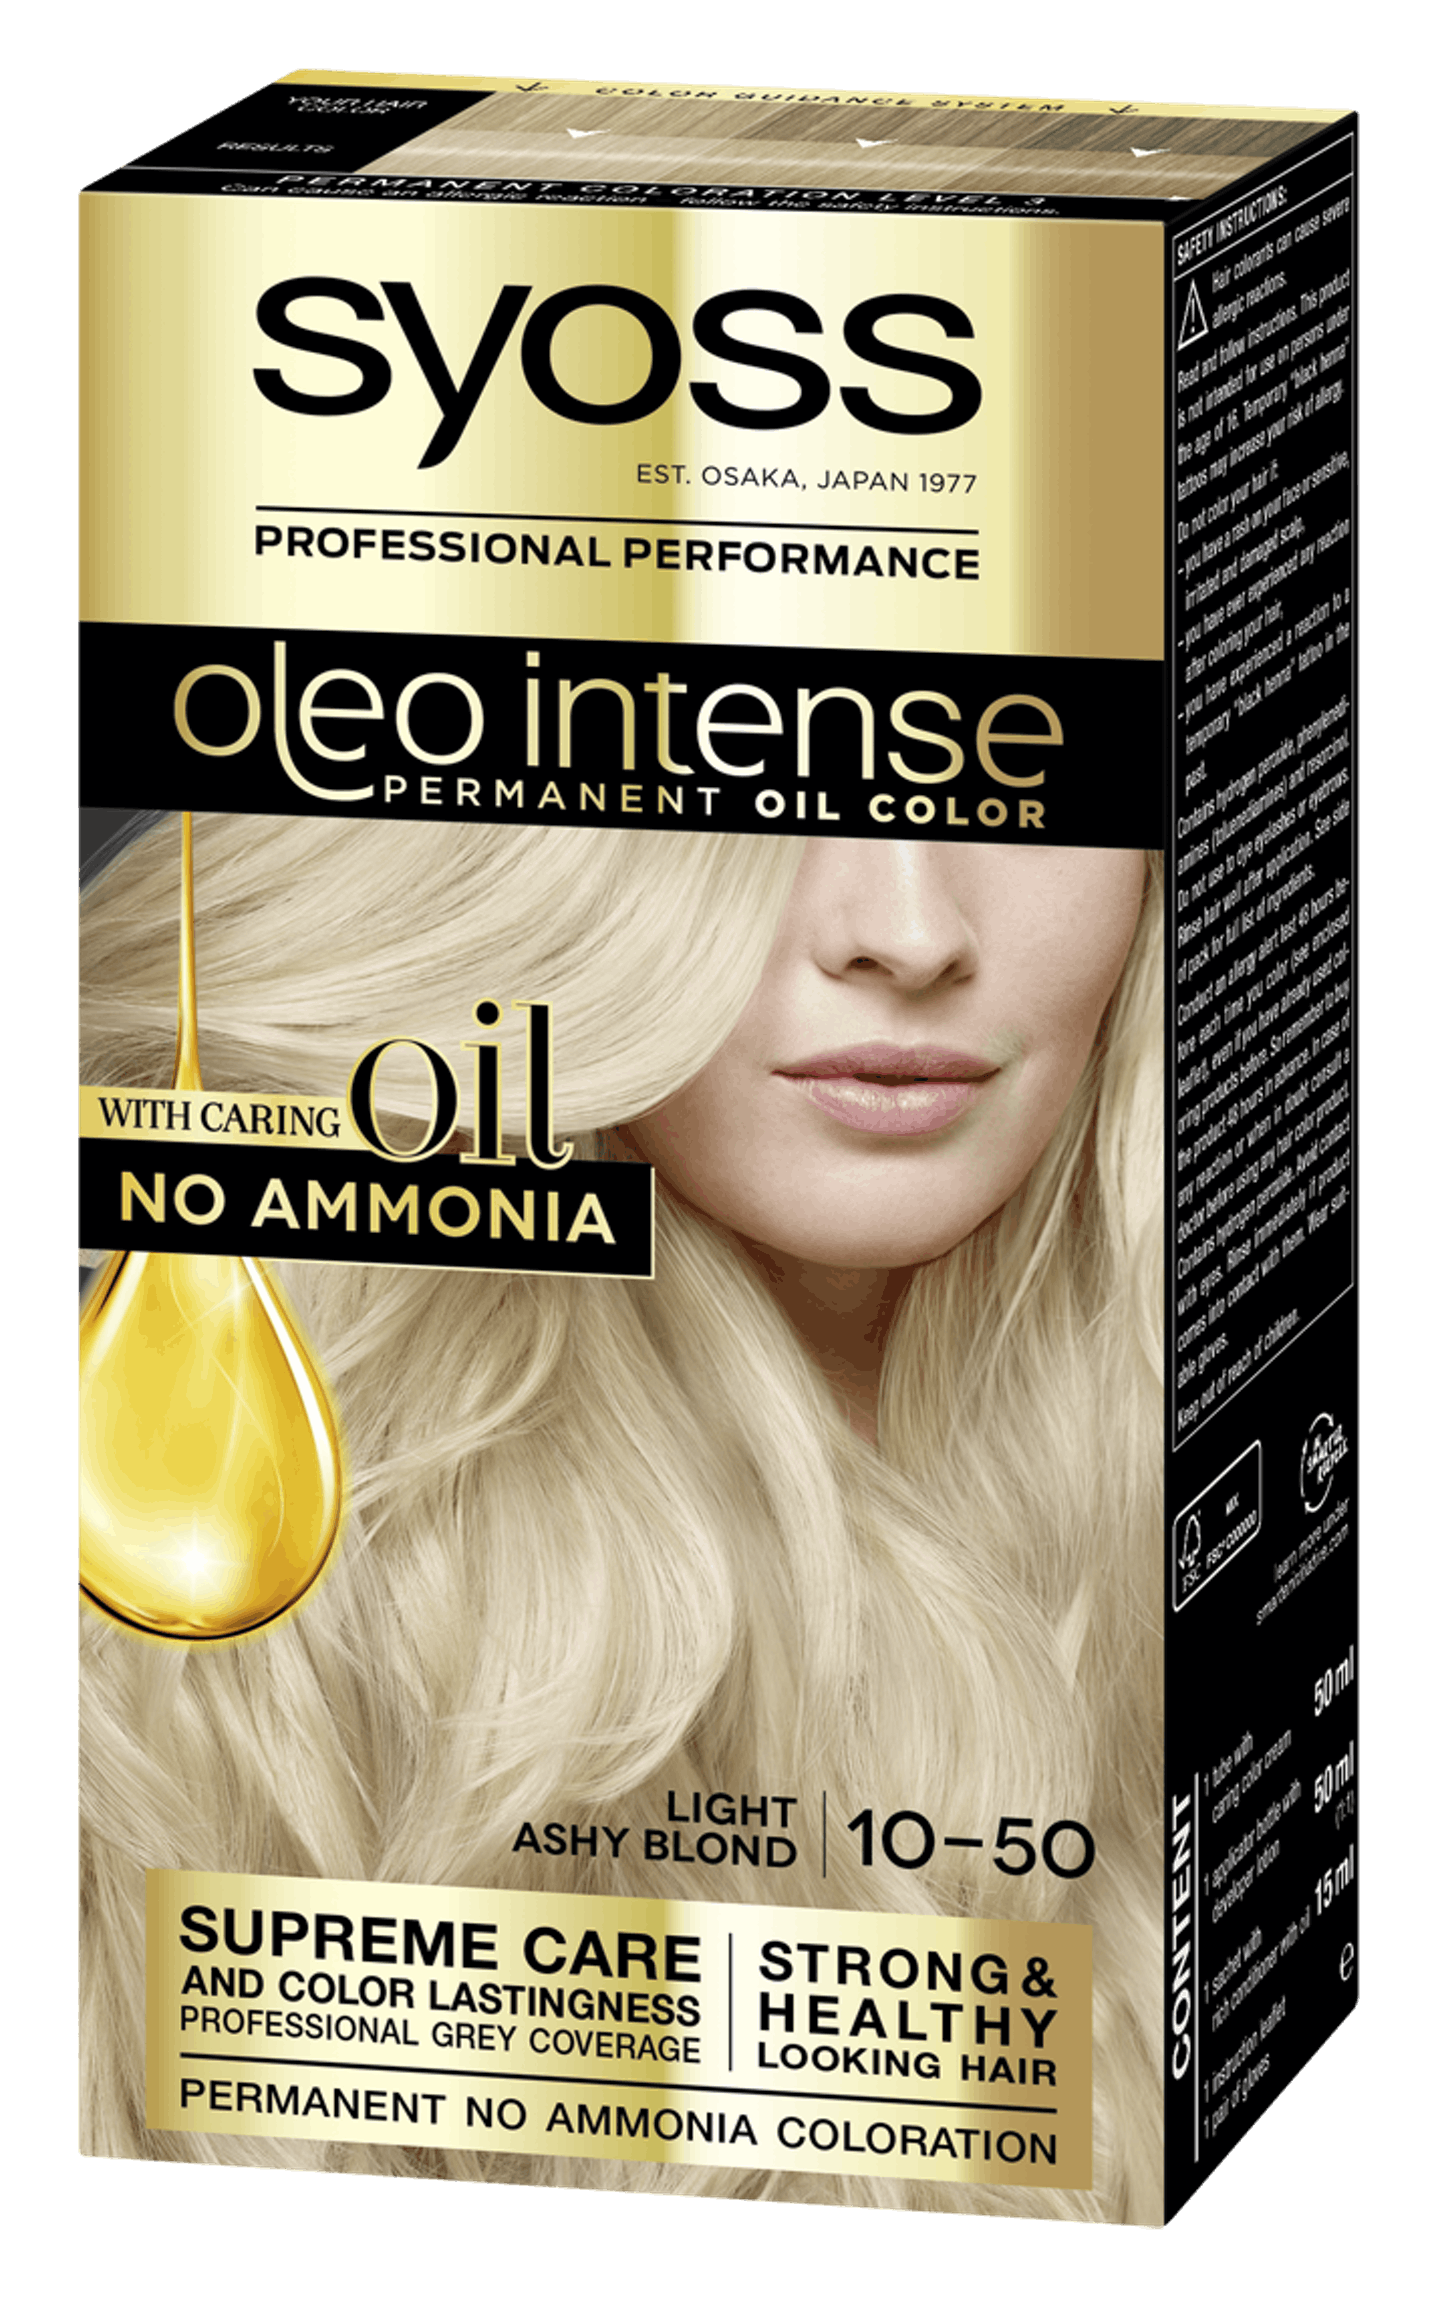 Syoss Oleo Intense Permanent Oil Color 10-50 Light Ashy Blond